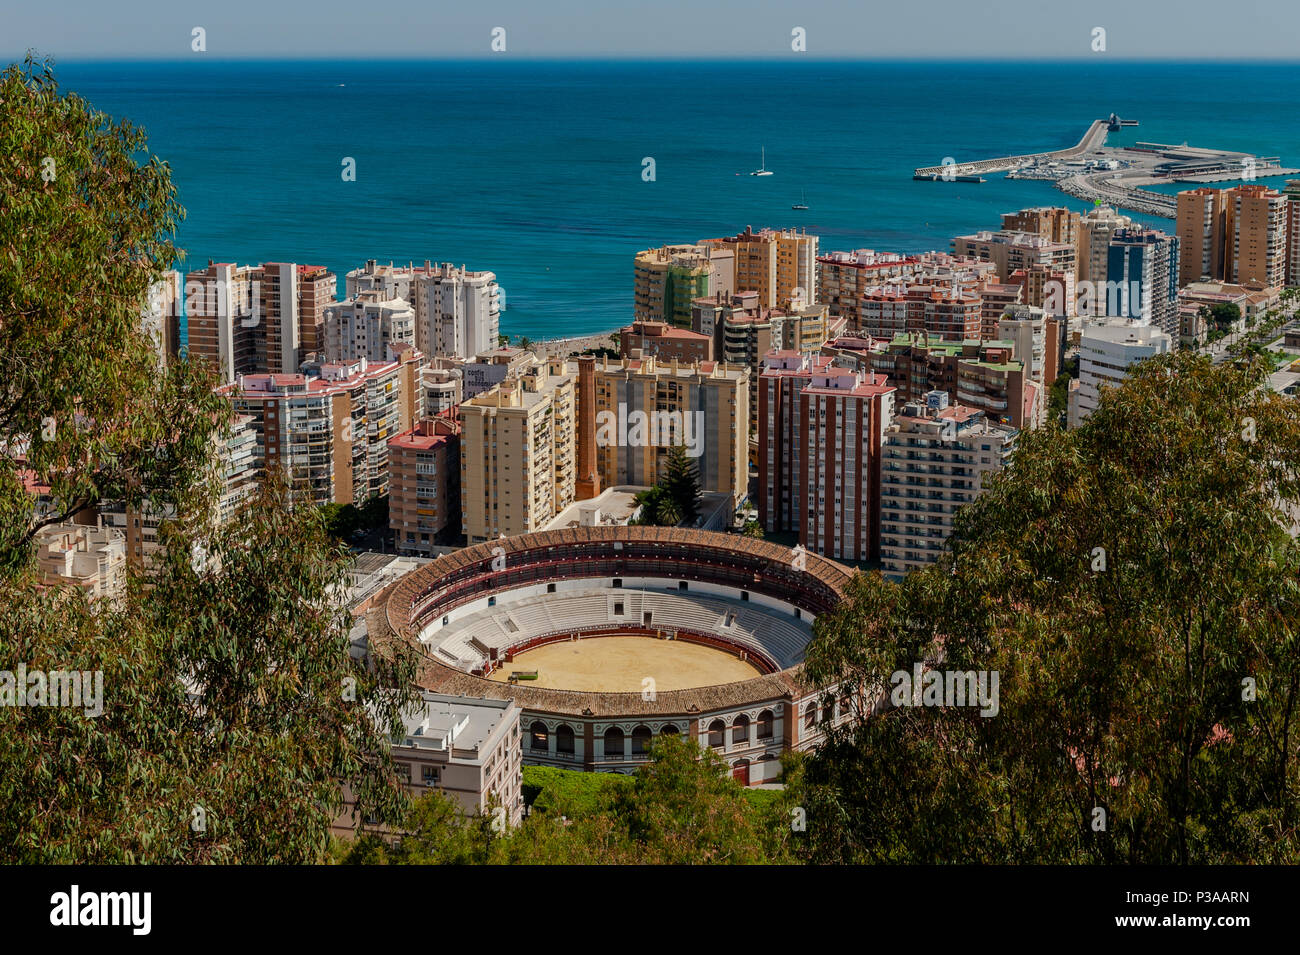 malagueta-bullring-plaza-de-toro-la-malagueta-malagas-bullring-city-skyline-and-harbour-in-malaga-spain-P3AARN.jpg